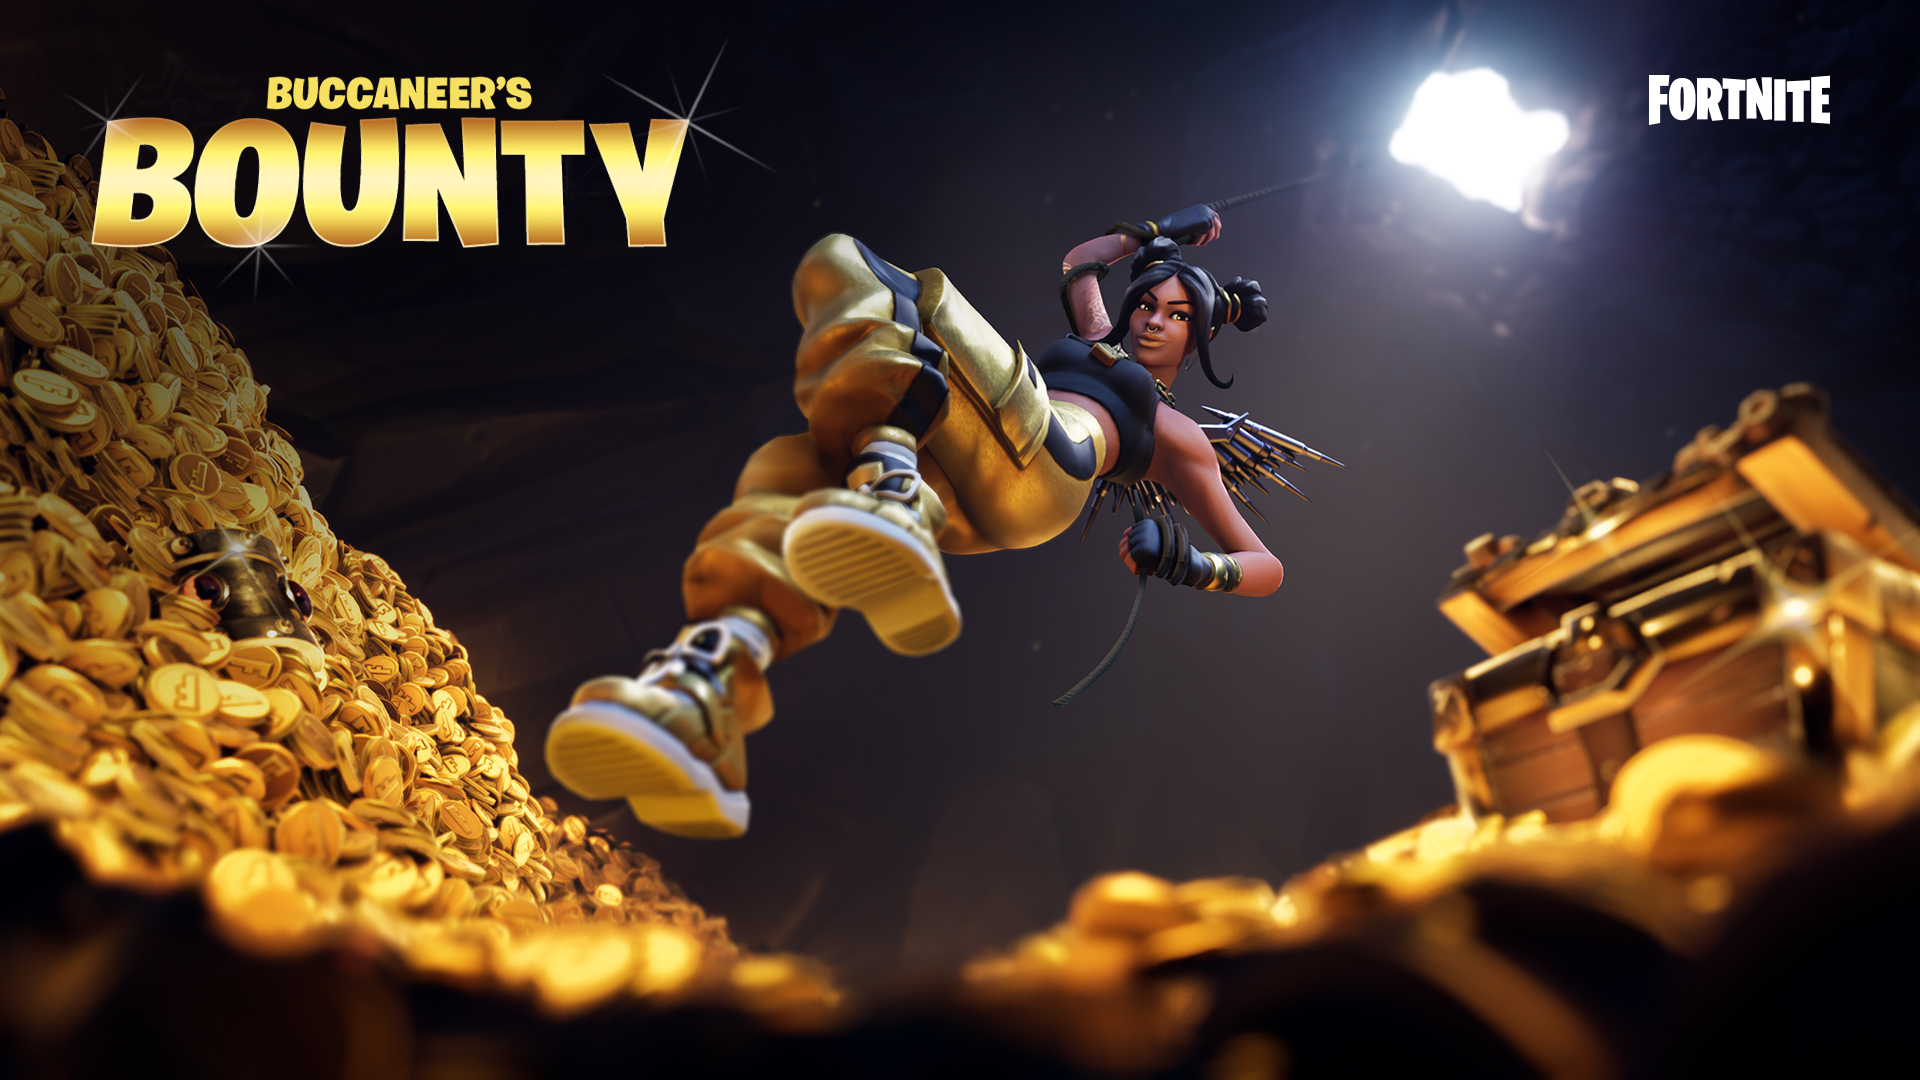 Fortnite Event Buccaneers Bounty Will Bring Free Challenges And Rewards In The V830 Update